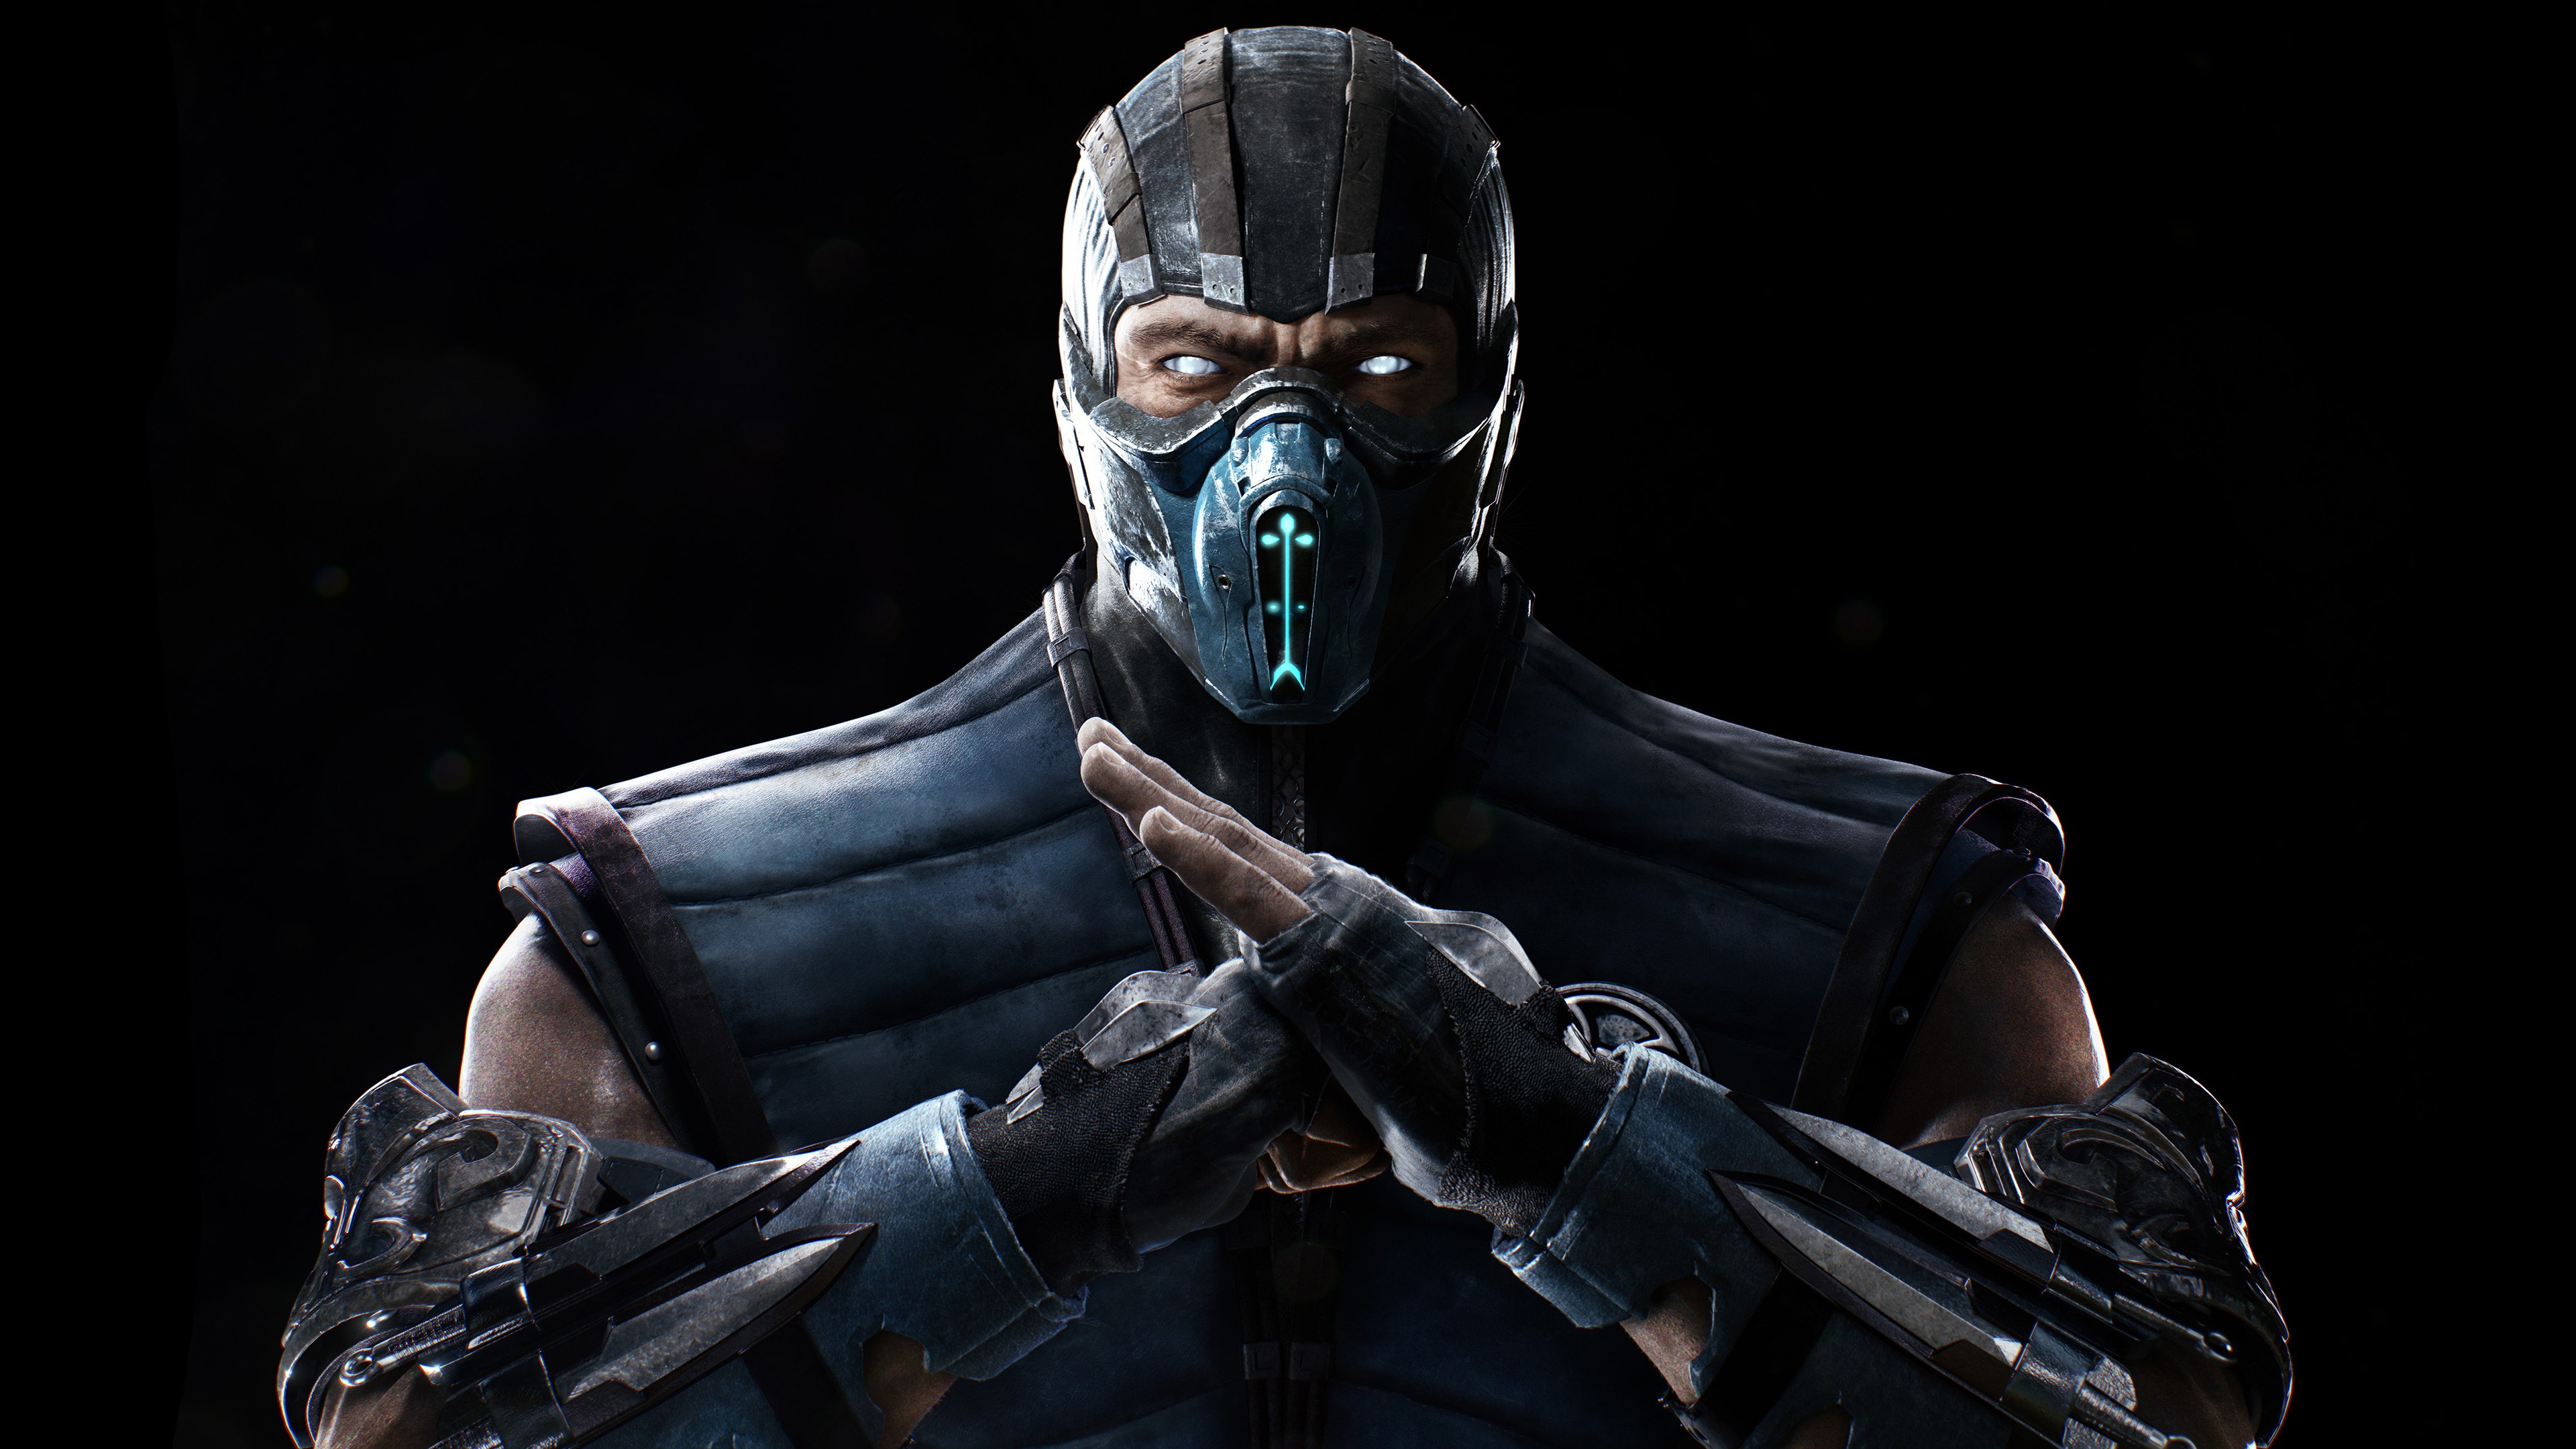 Sub Zero Mortal Kombat X Iphone Wallpaper Mortal Kombat X Sub Zero 4k 5k Wallpapers Hd Wallpapers